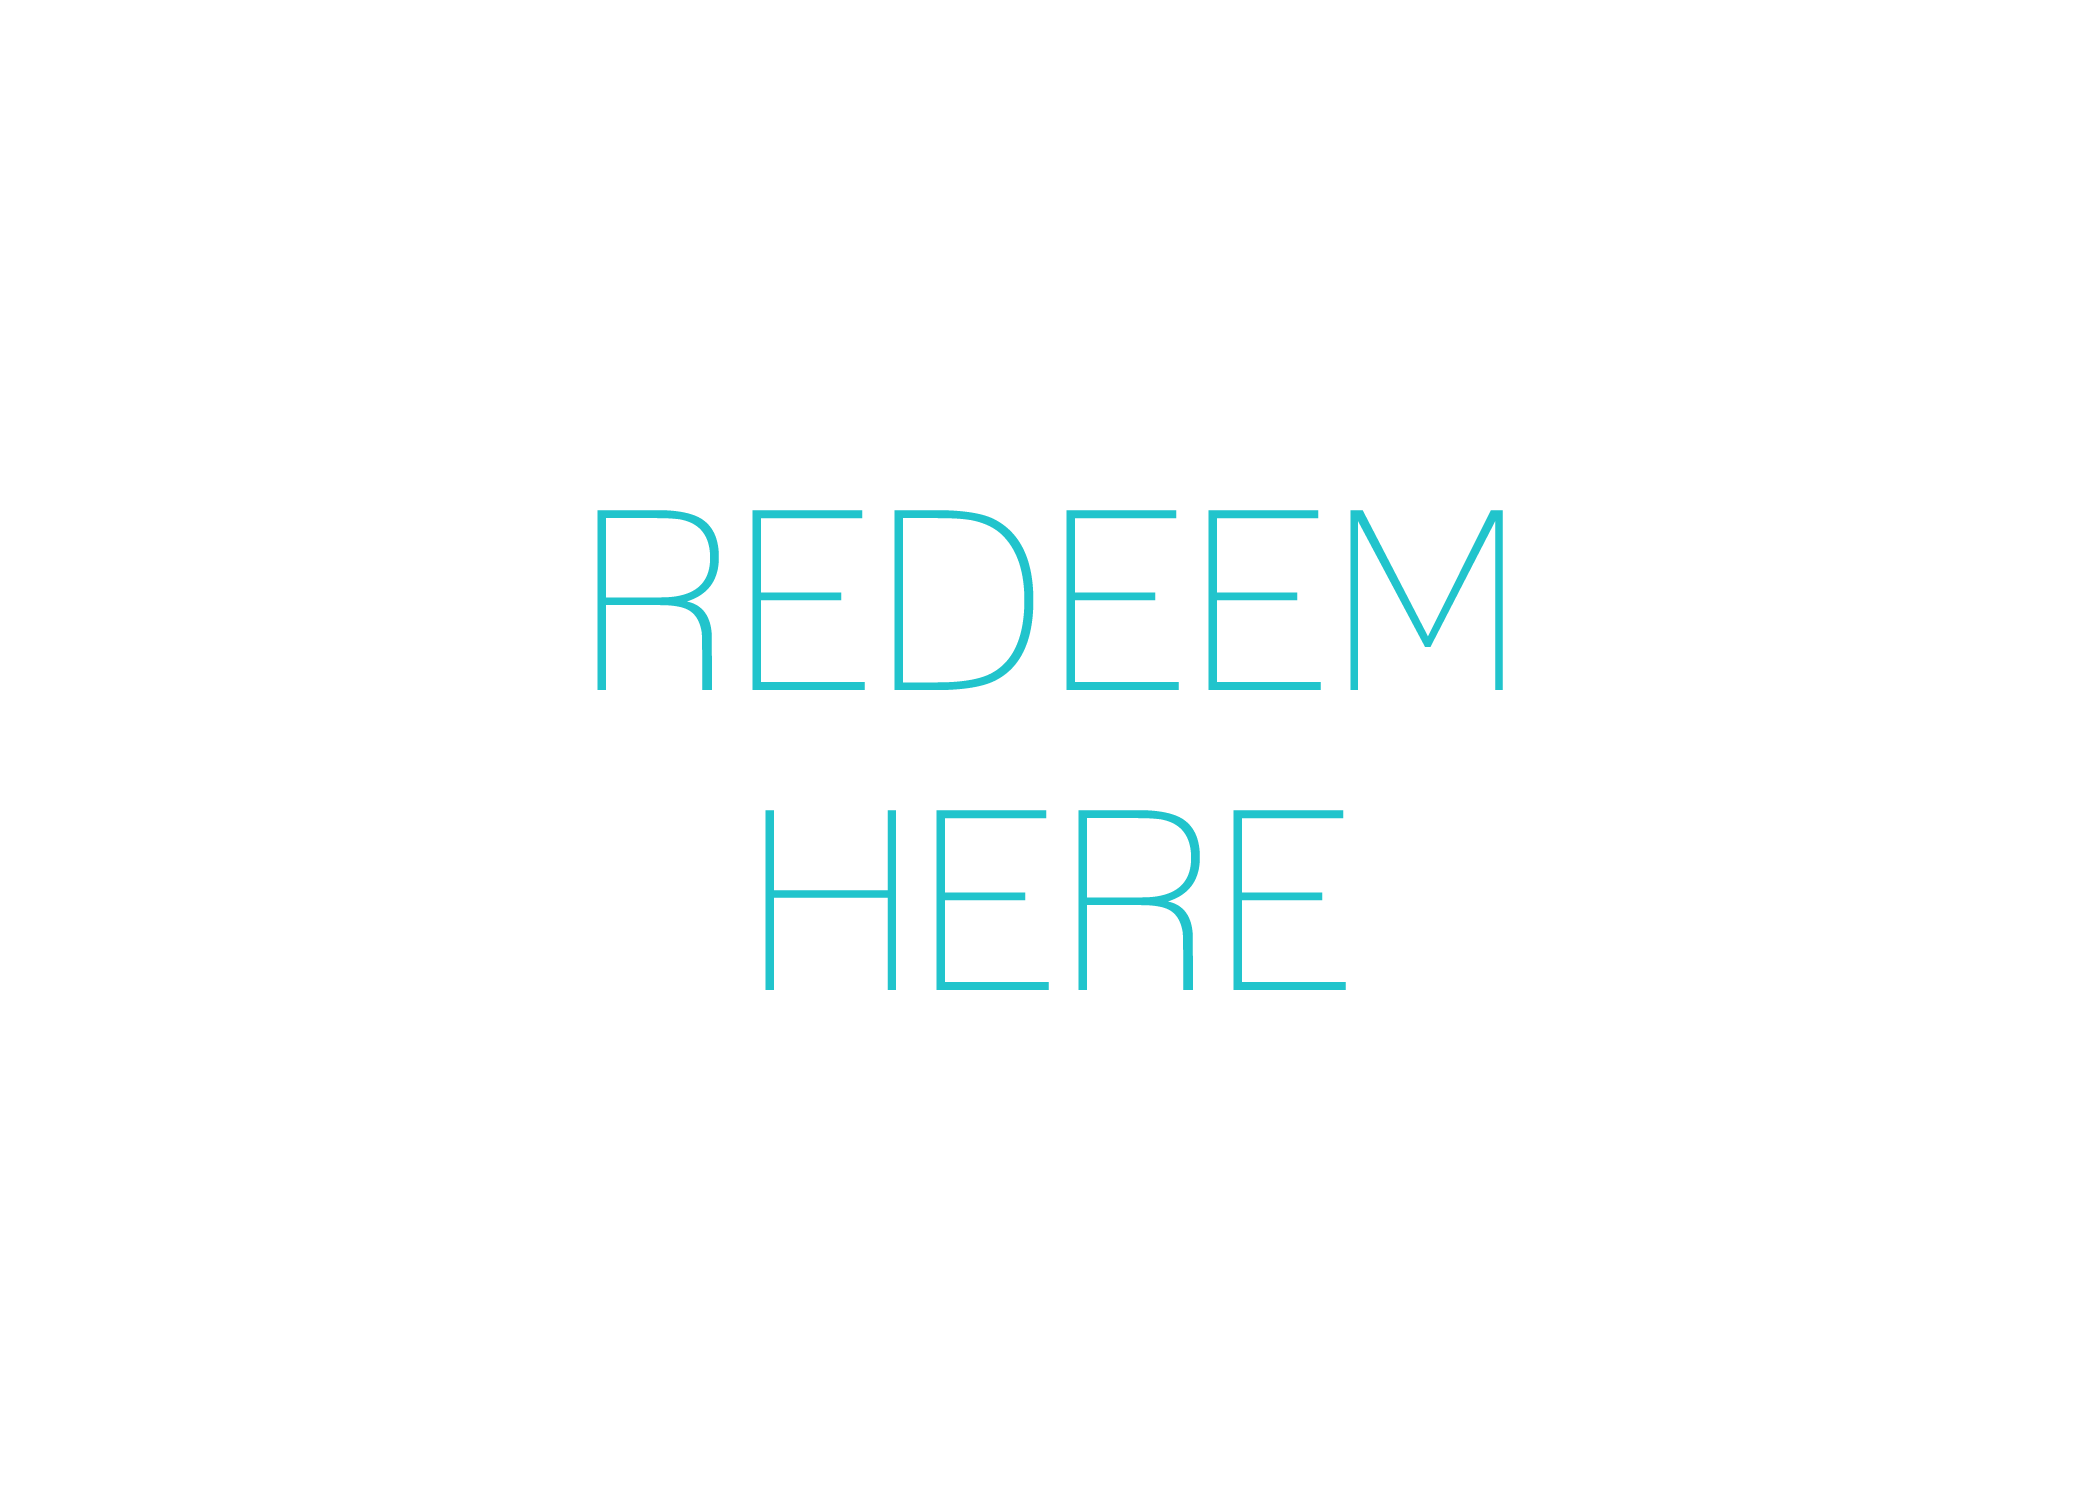 redeem here2.png